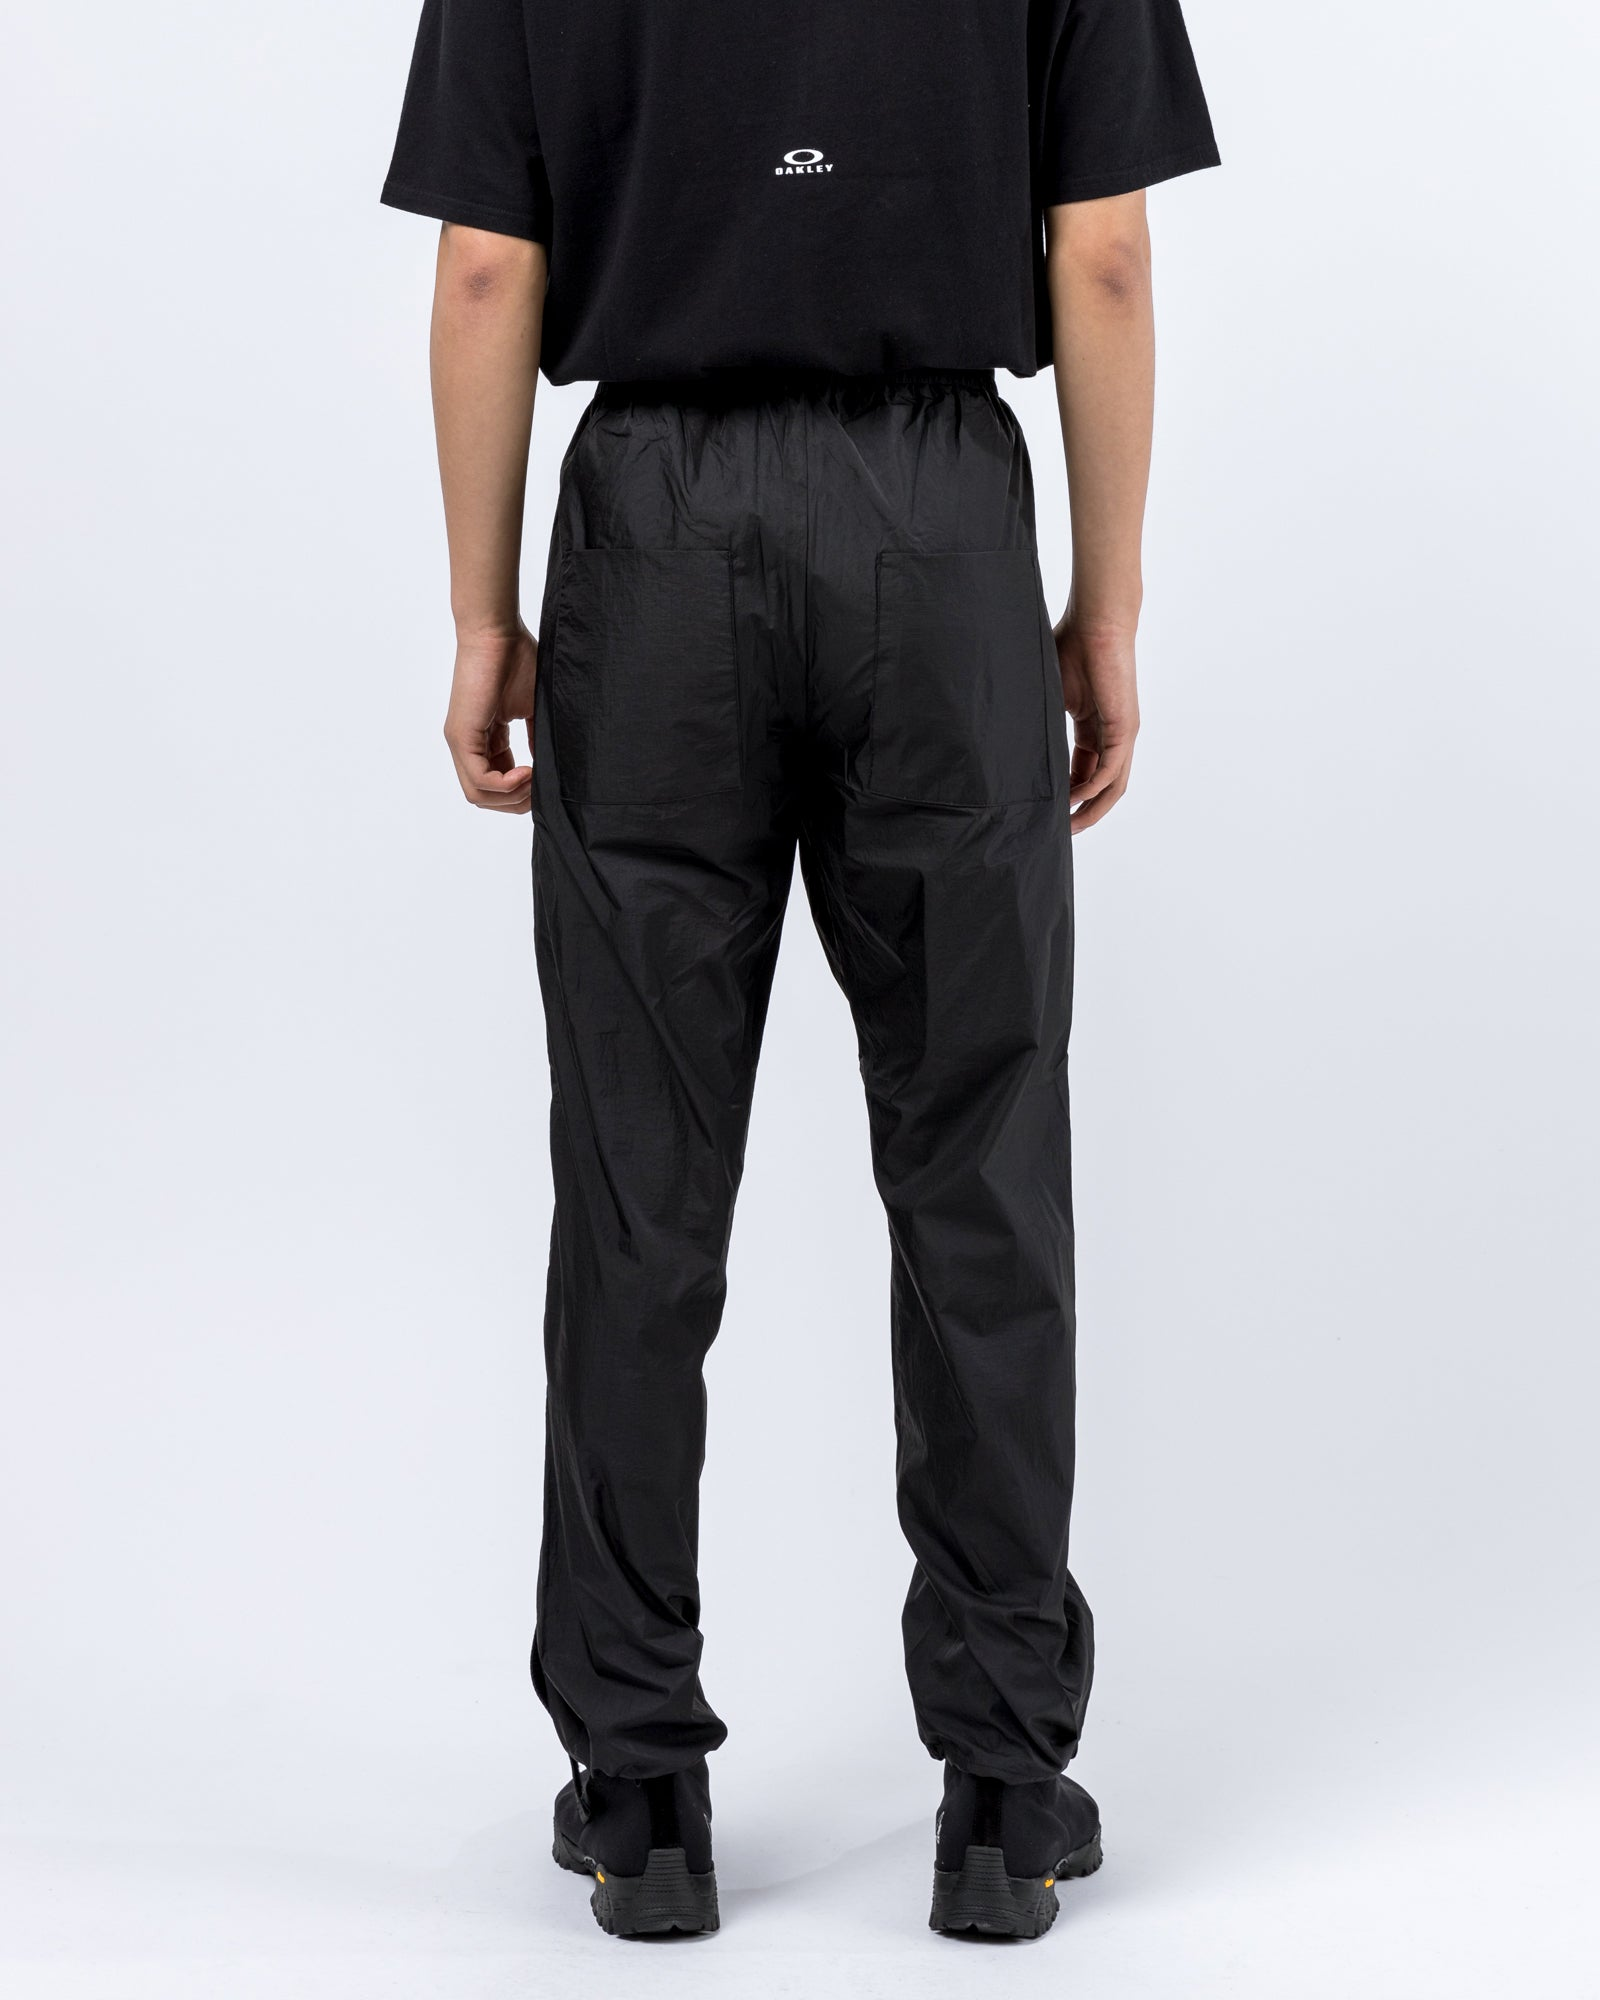 Jogging Pant in Black | Oakley by Samuel Ross